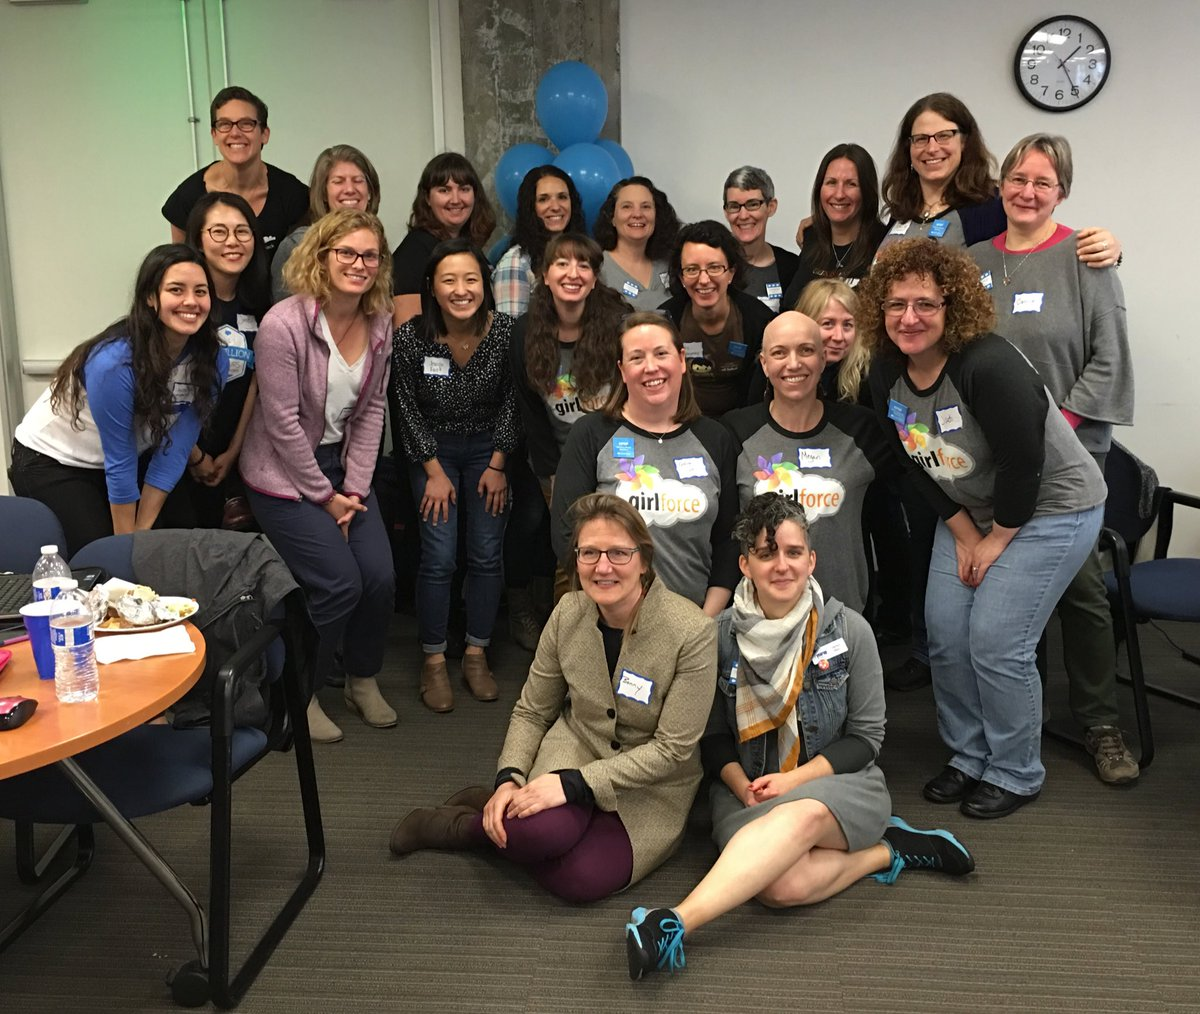 The women rocking today's @SalesforceOrg #NPSPsprint  @Girlforce1 https://t.co/OdJAVE5GYb